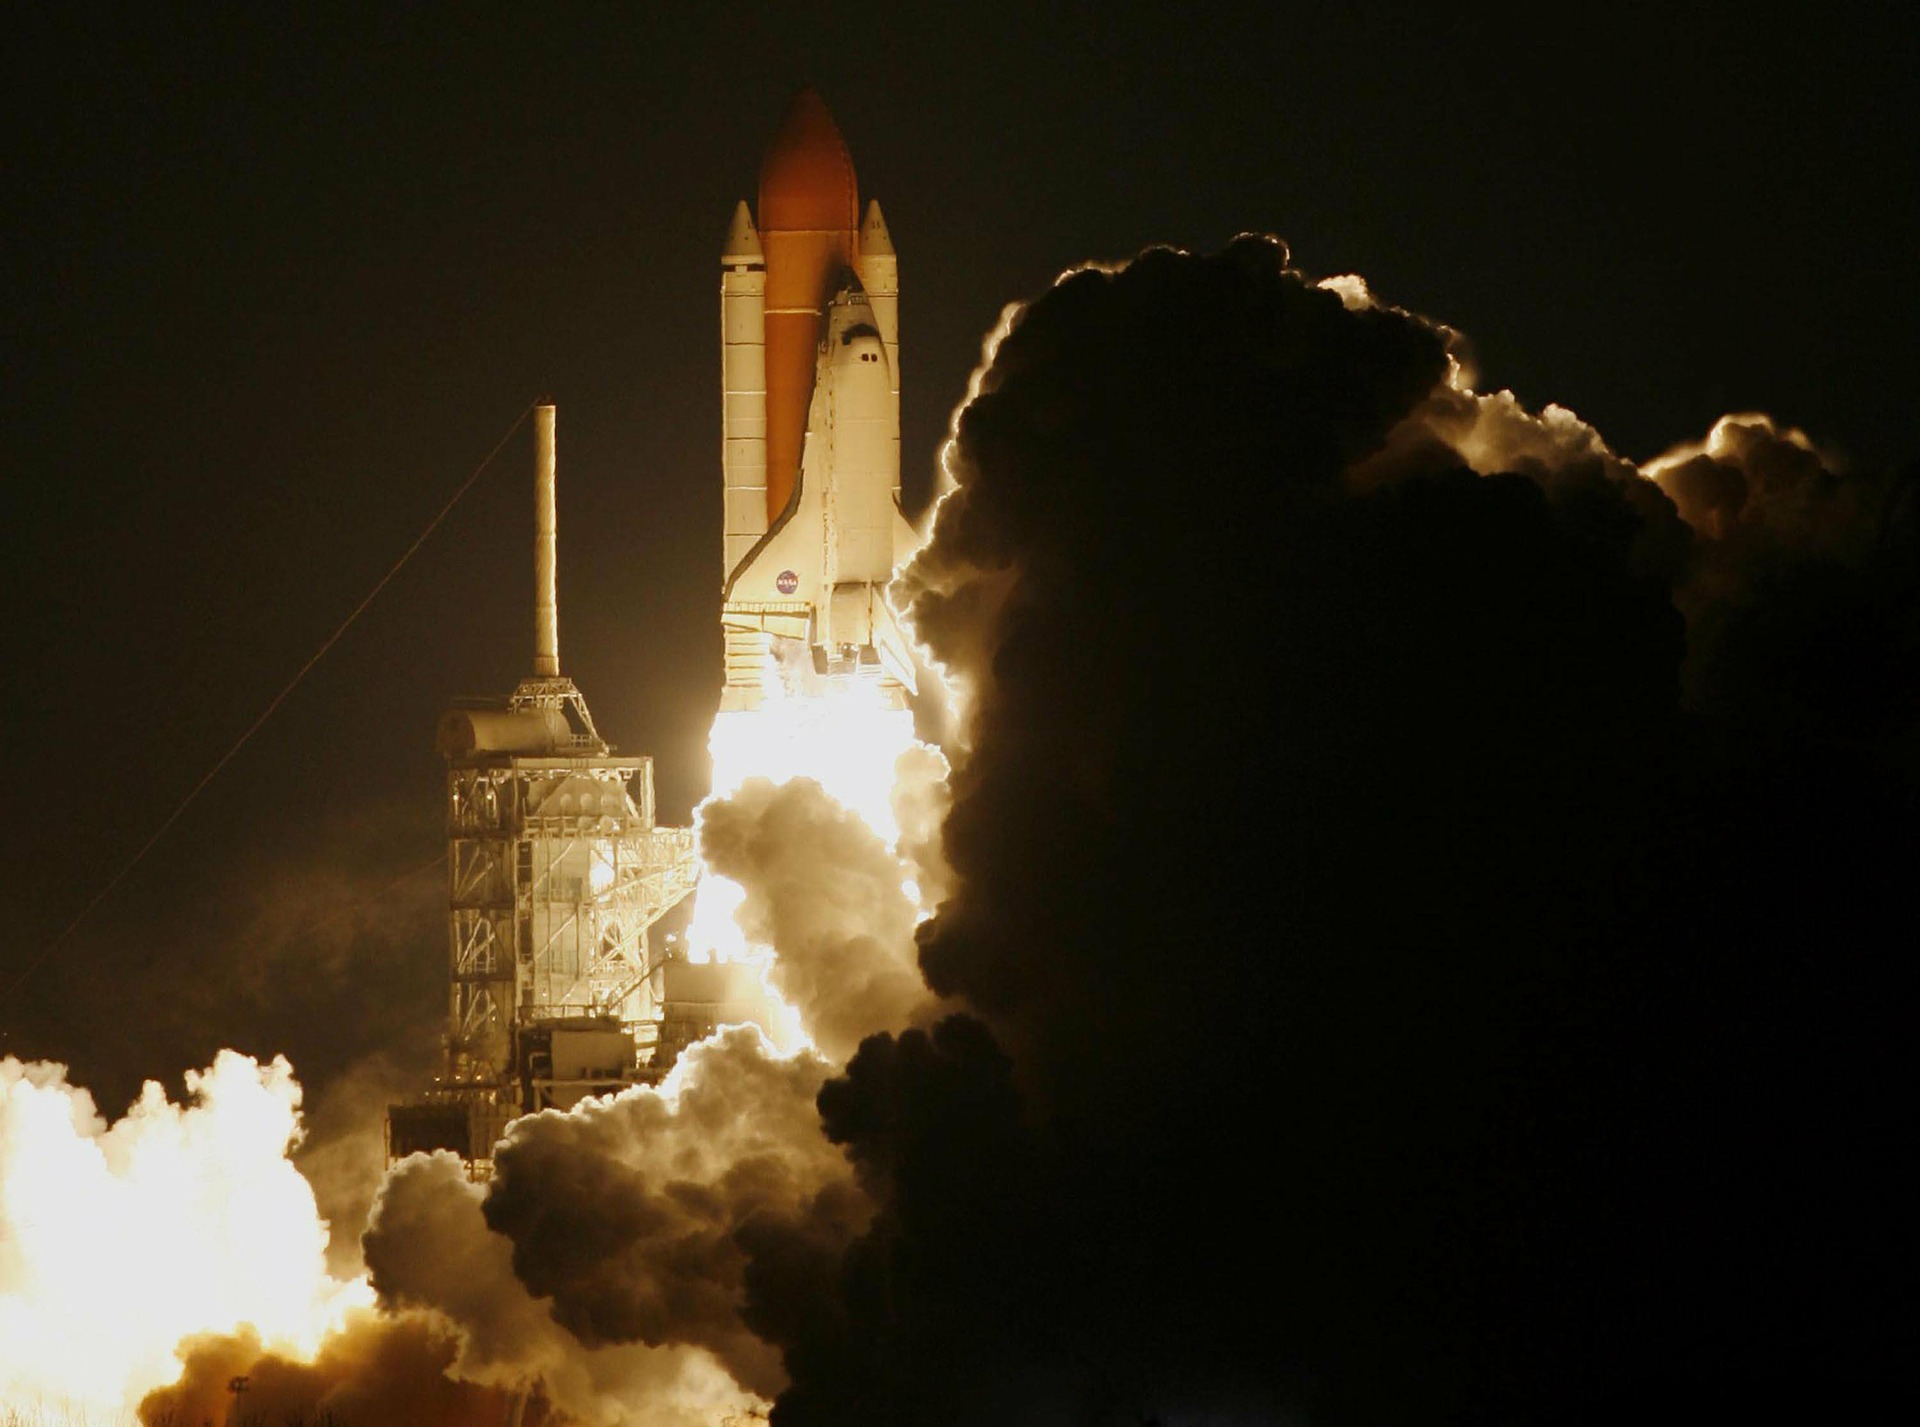 Space Innovation through Cross-Pollination: One Challenge of a Virtual Era